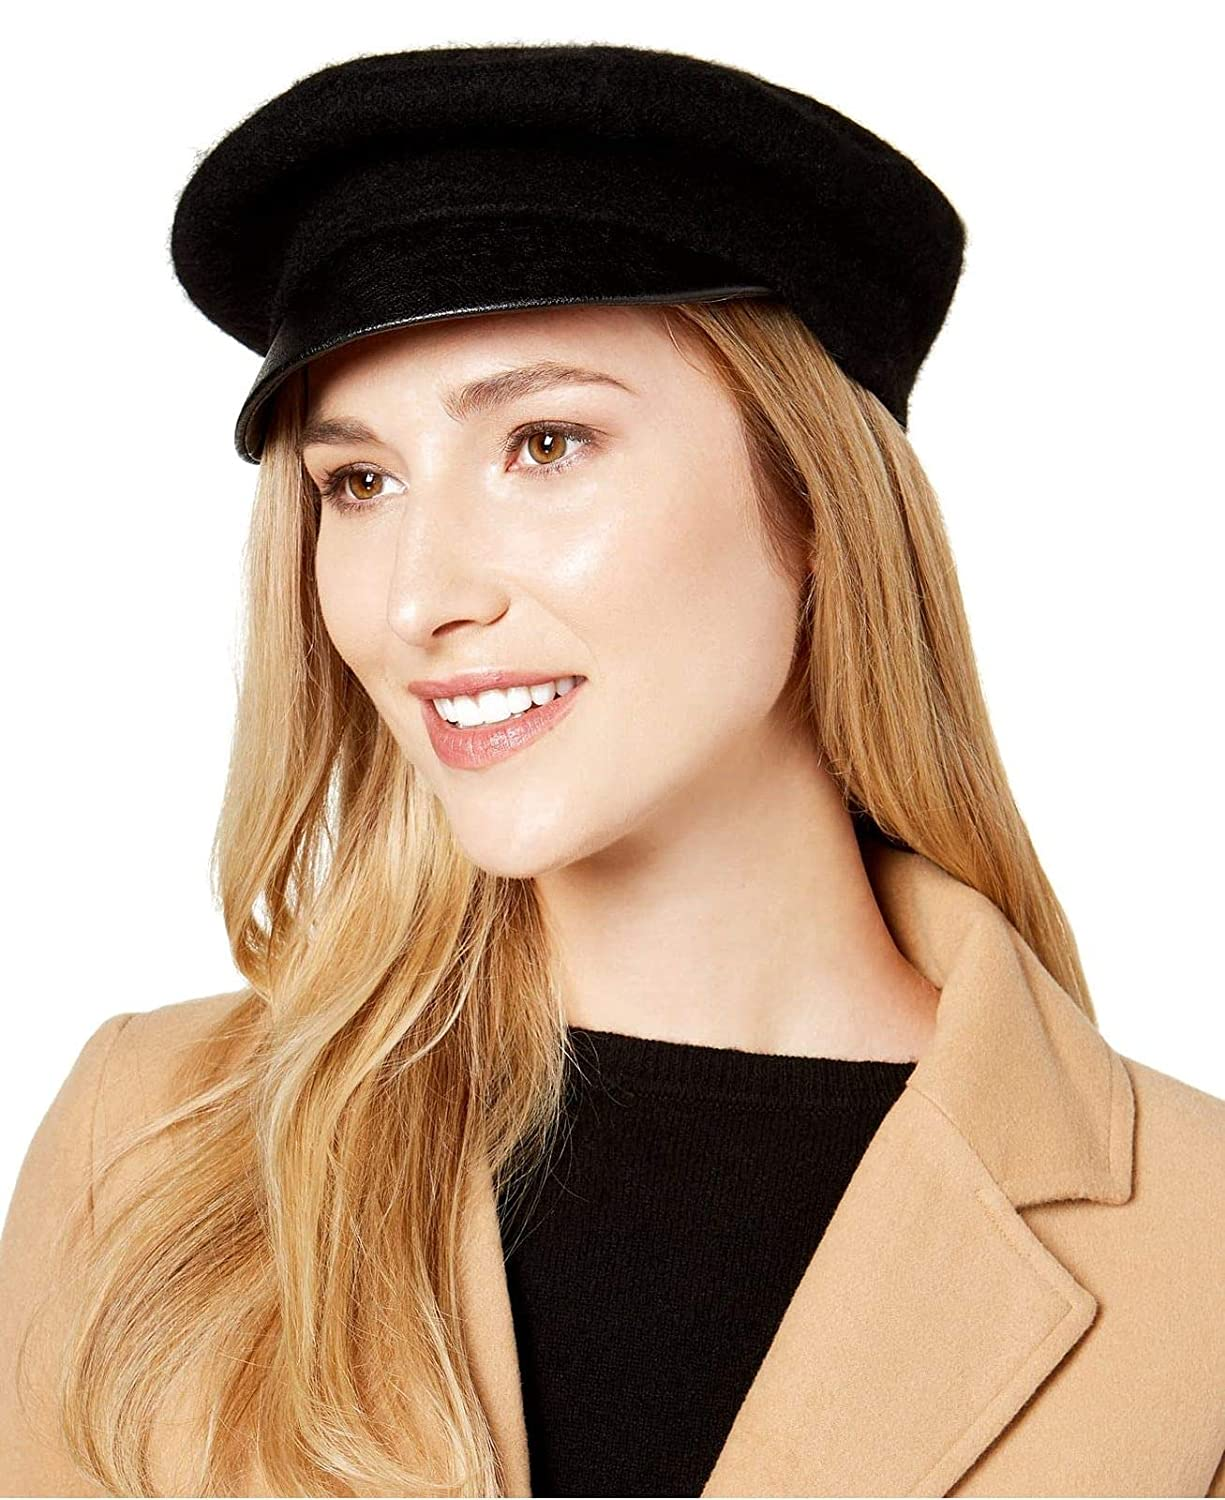 Nine West Womens Wool /& Faux-Leather Newsboy Hat Black One Size